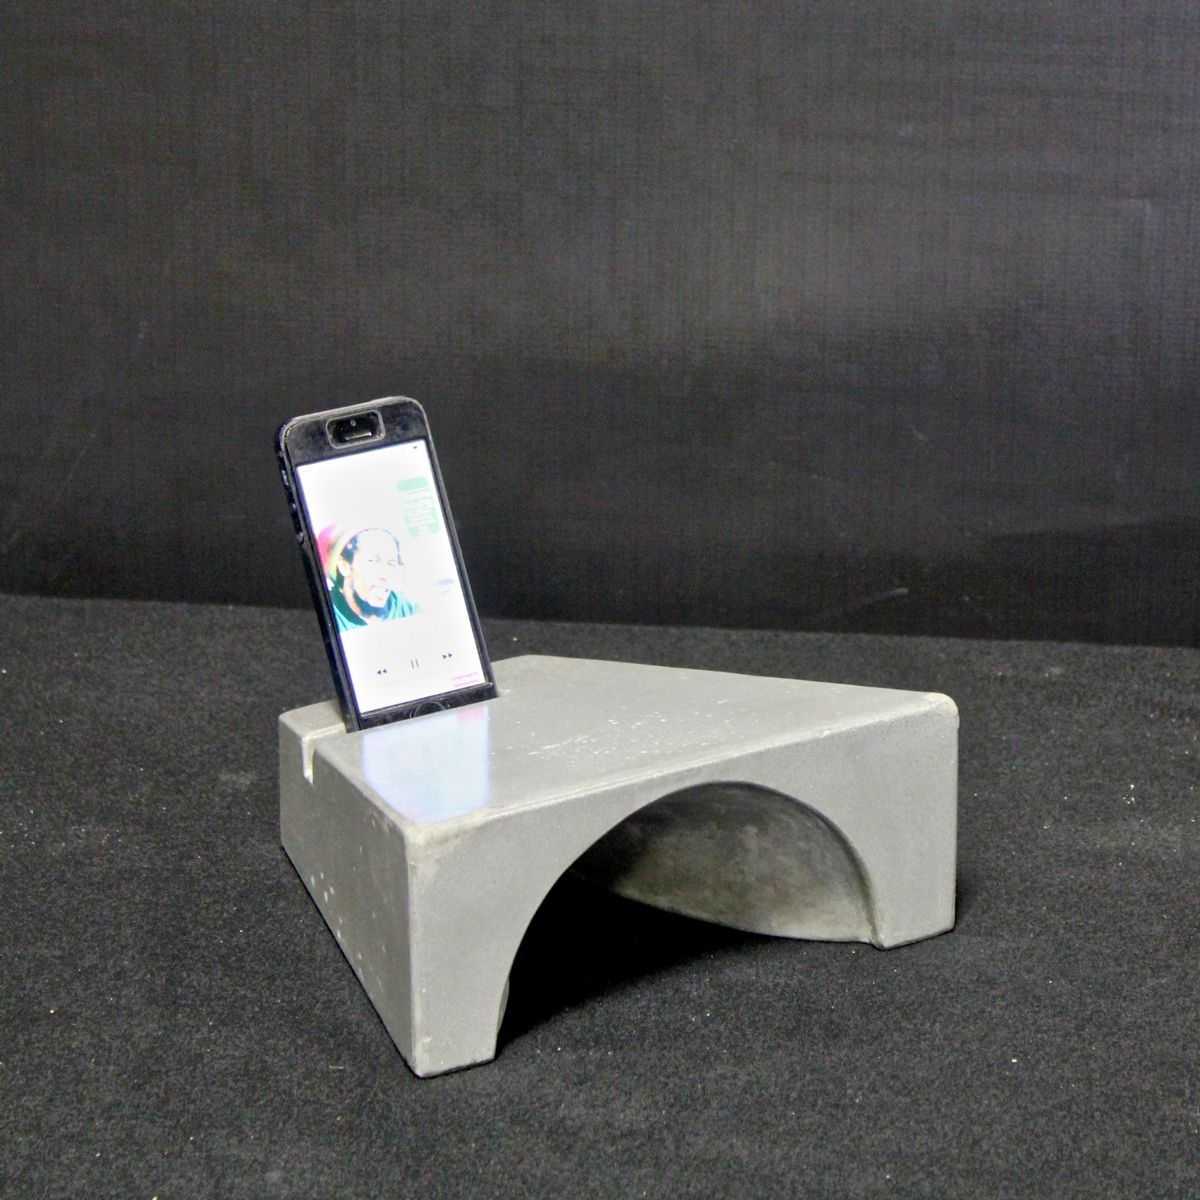 FIRST PLACE Amplif-i Concrete iPhone Dock Jonathan Haywood of Epic Artisan Concrete St Petersburg, Florida The Amplif-i Concrete iPhone dock uses natural acoustic amplification for all generations of iPhone.